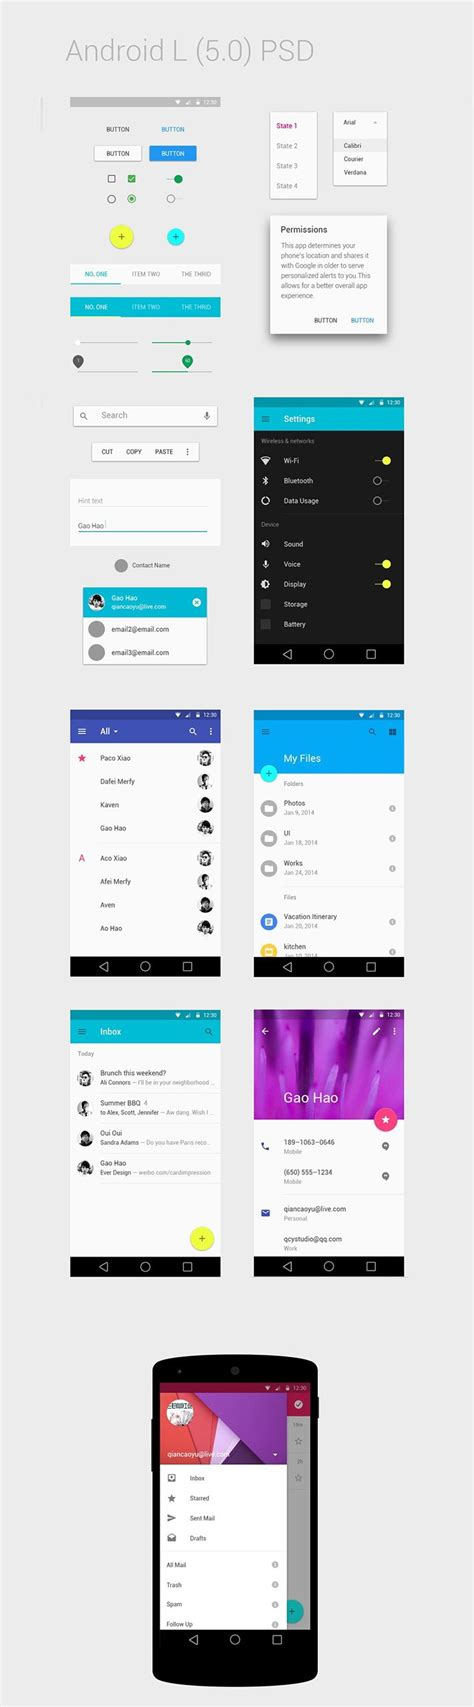 website templates for android 10 gui templates for android downgraf com design shop